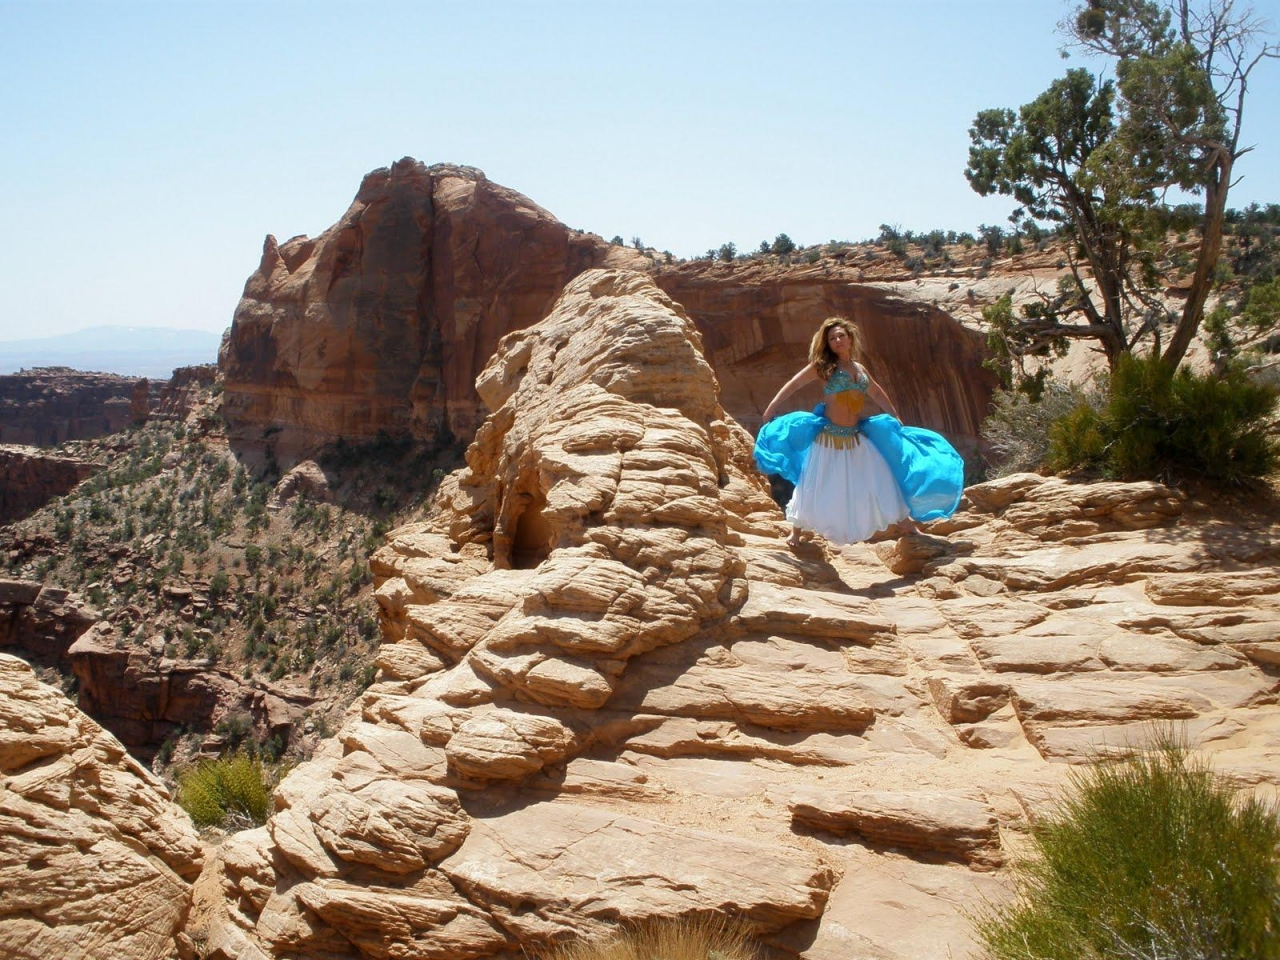 A picture from Arches National Park by Diana Martirosova